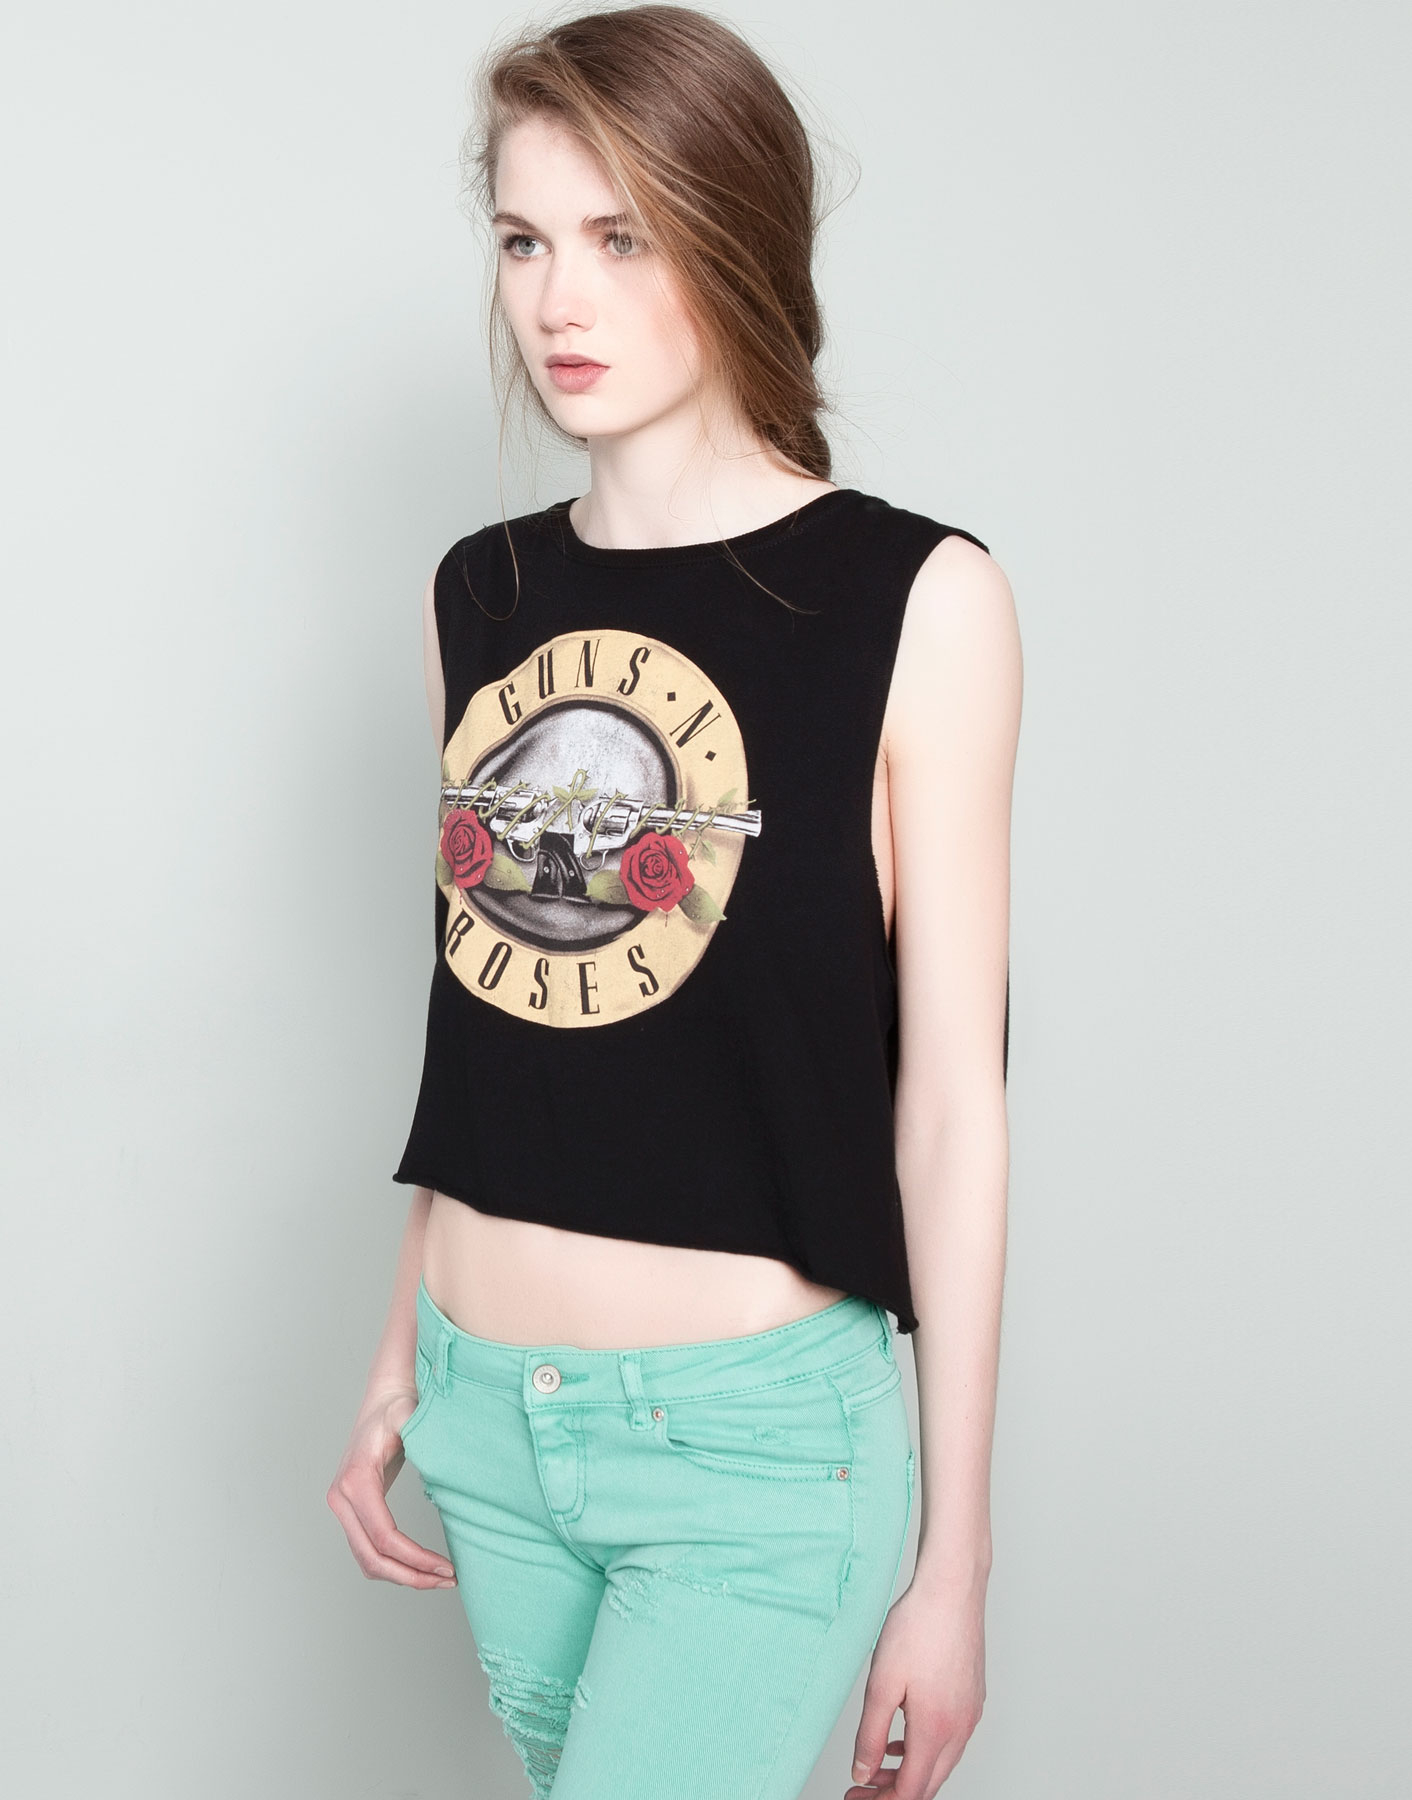 Tags Distressed band tee graphic tee Guns N' Roses studded rock n roll Gucci belt gg belt guns n roses Tops Tees - Short Sleeve Studded Guns N Roses Tee Custom Guns N Roses tee. Raw edge hems, with metal studs in multiple colors and finishes going down shoulders, and inside graphic design.